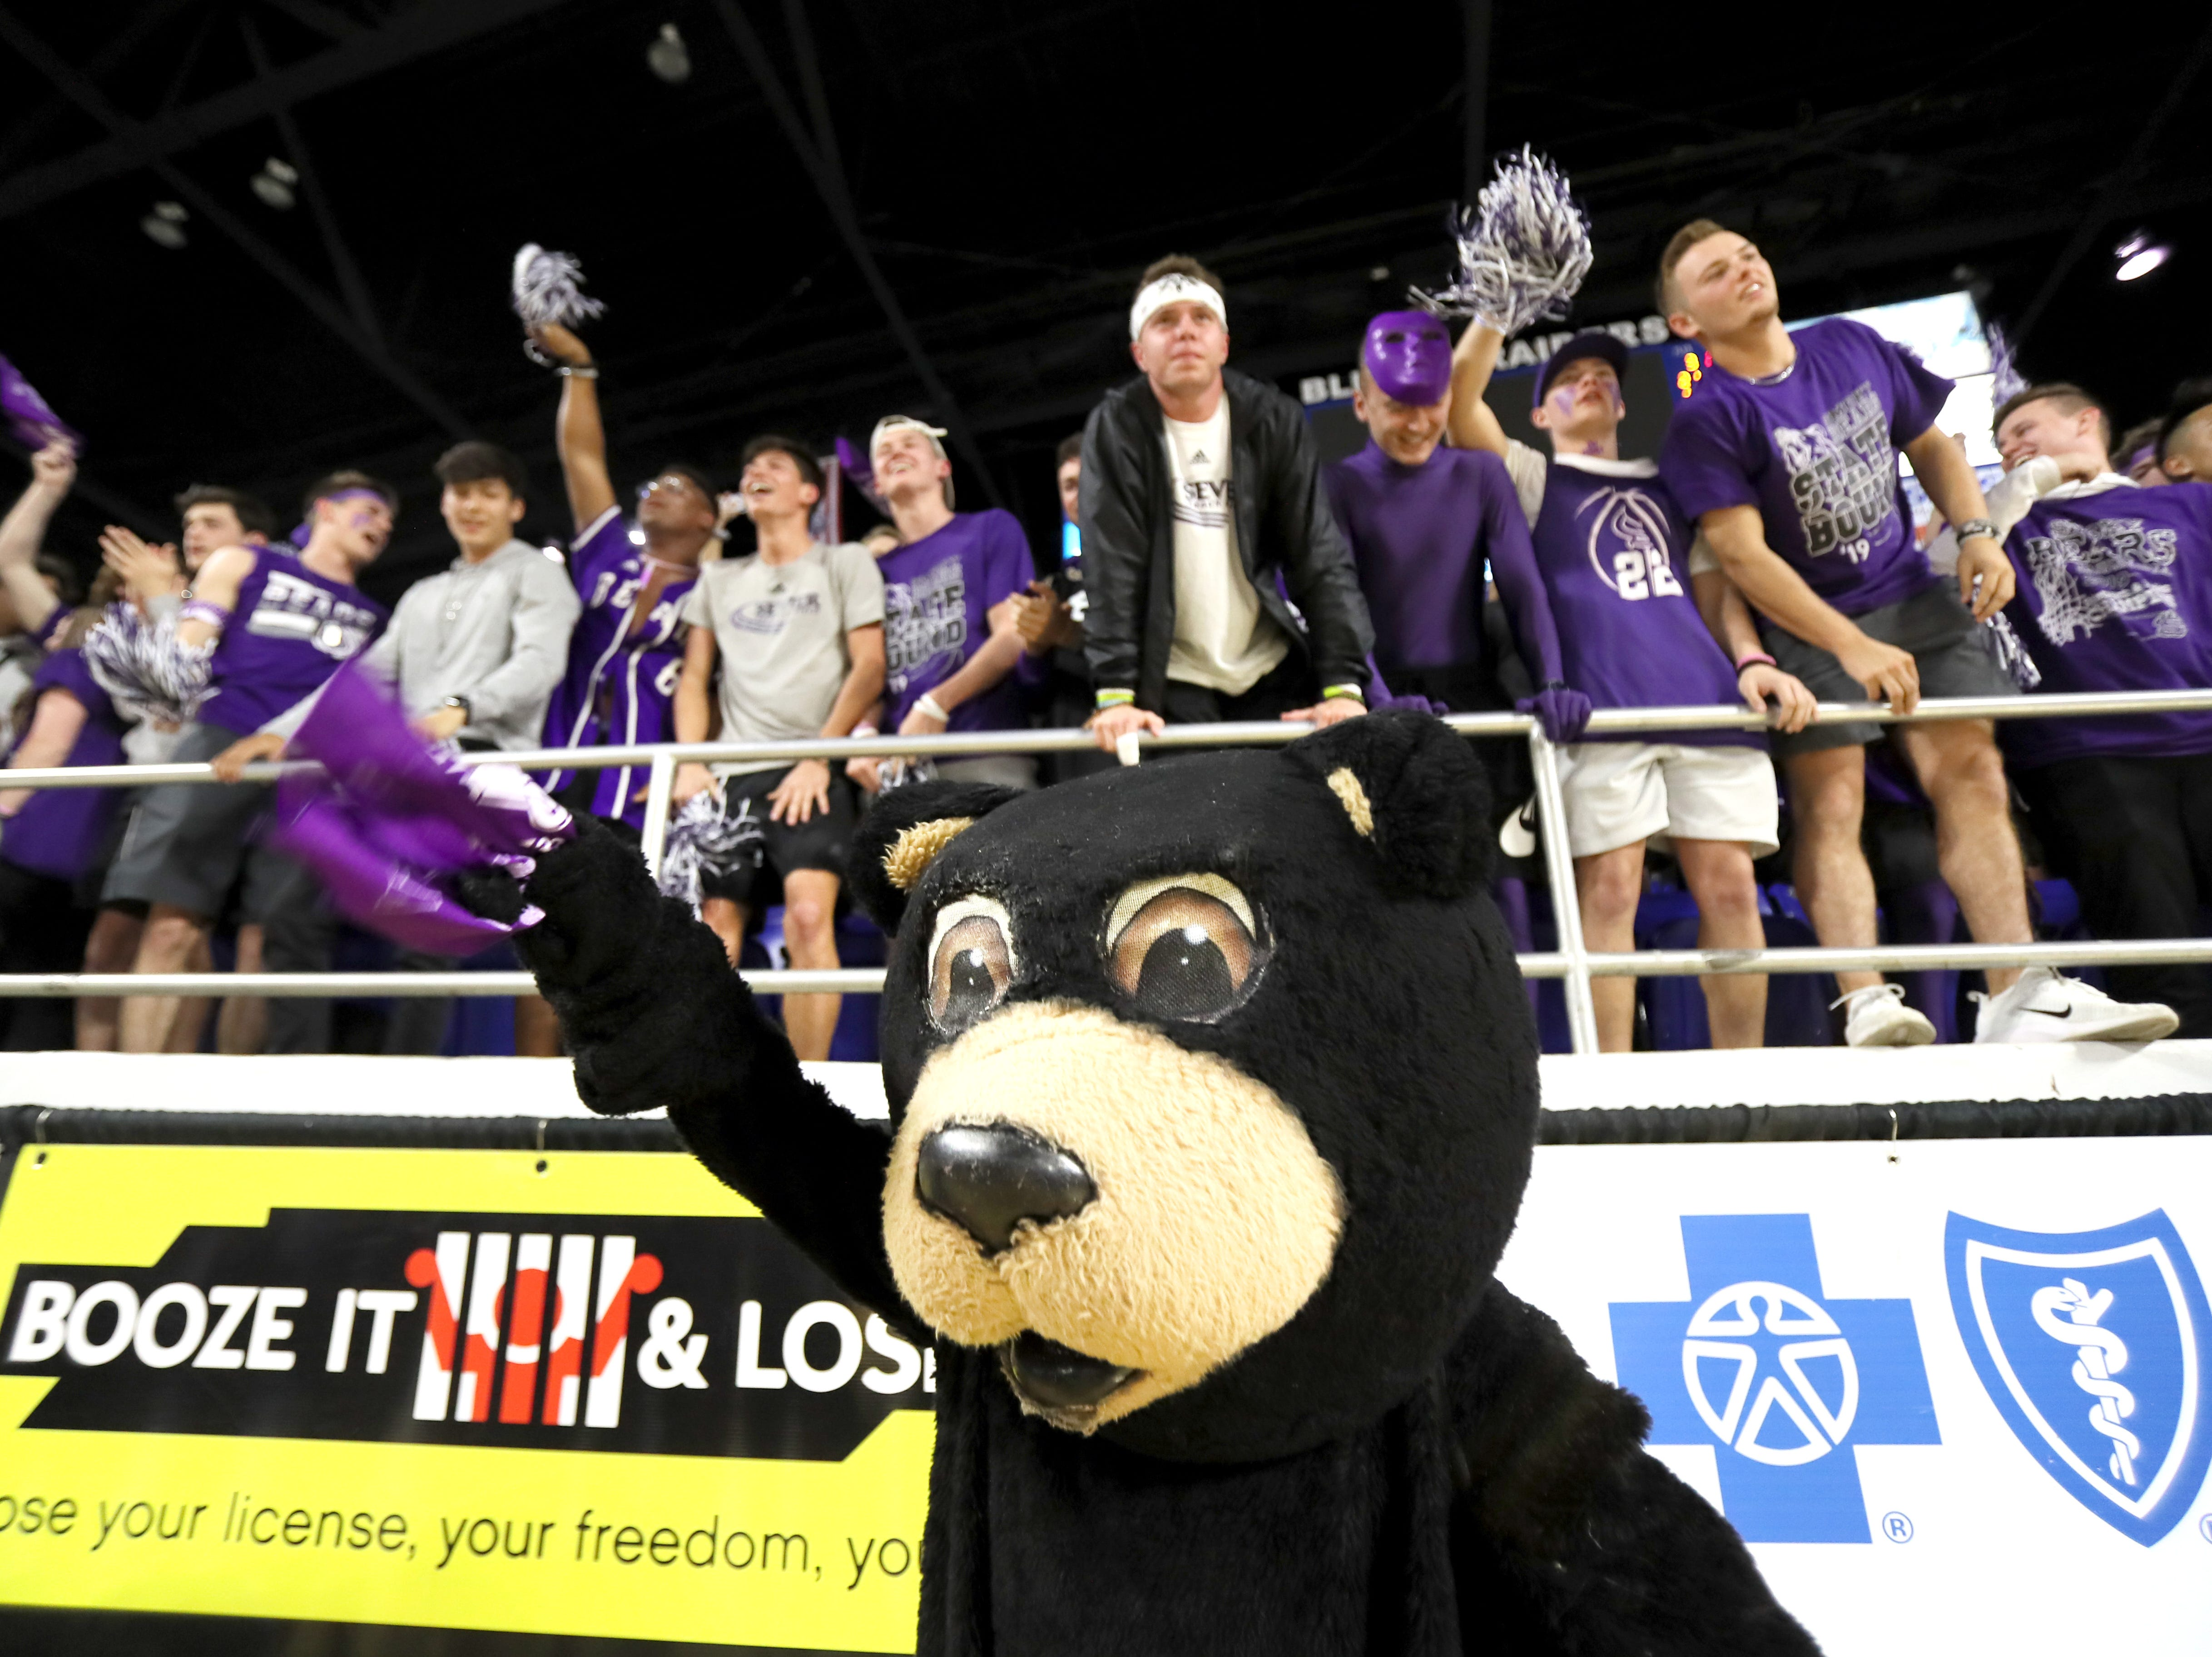 Sevier County's mascott cheers on their team as they play Whitehaven during the TSSAA Division I basketball state tournament at the Murphy Center in Murfreesboro, Tenn. on Wednesday, March 13, 2019.